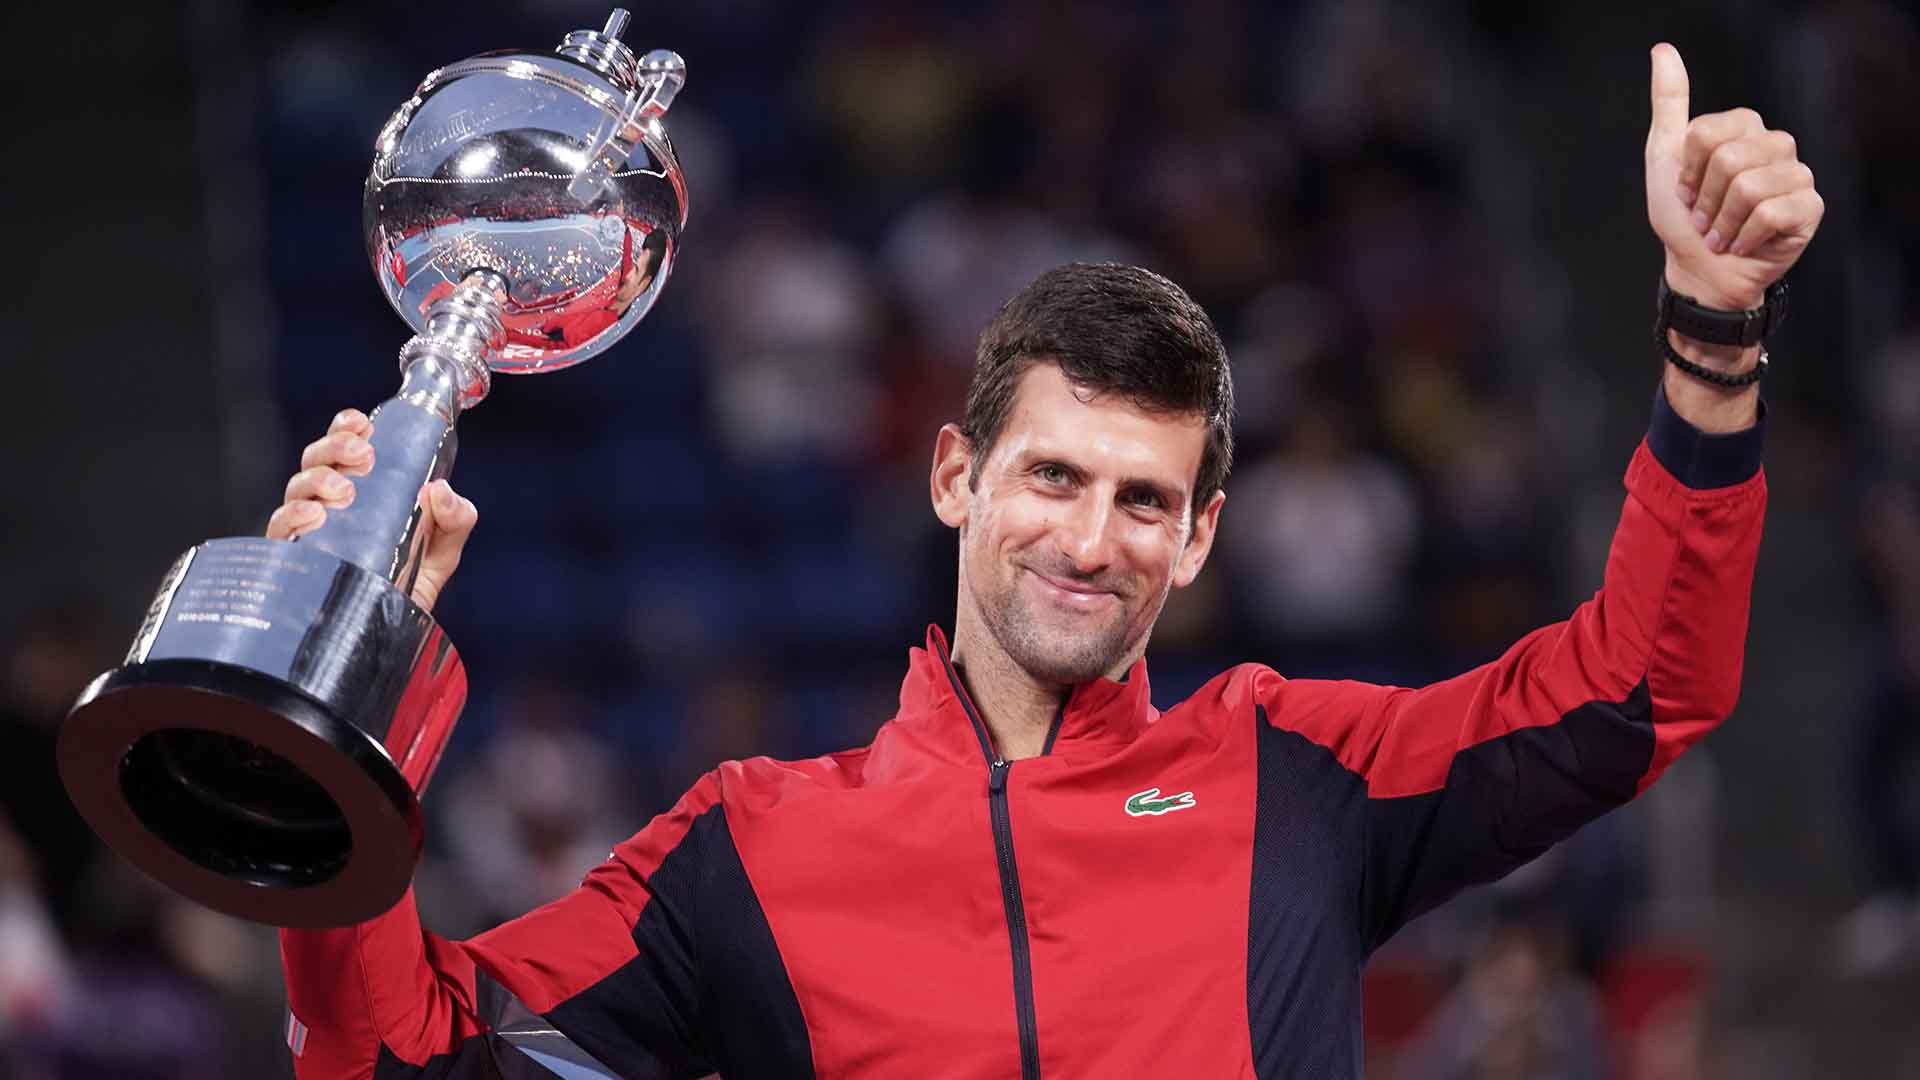 Novak Djokovic defeats John Millman in straight sets to lift the Rakuten Japan Open Tennis Championships trophy on Sunday.